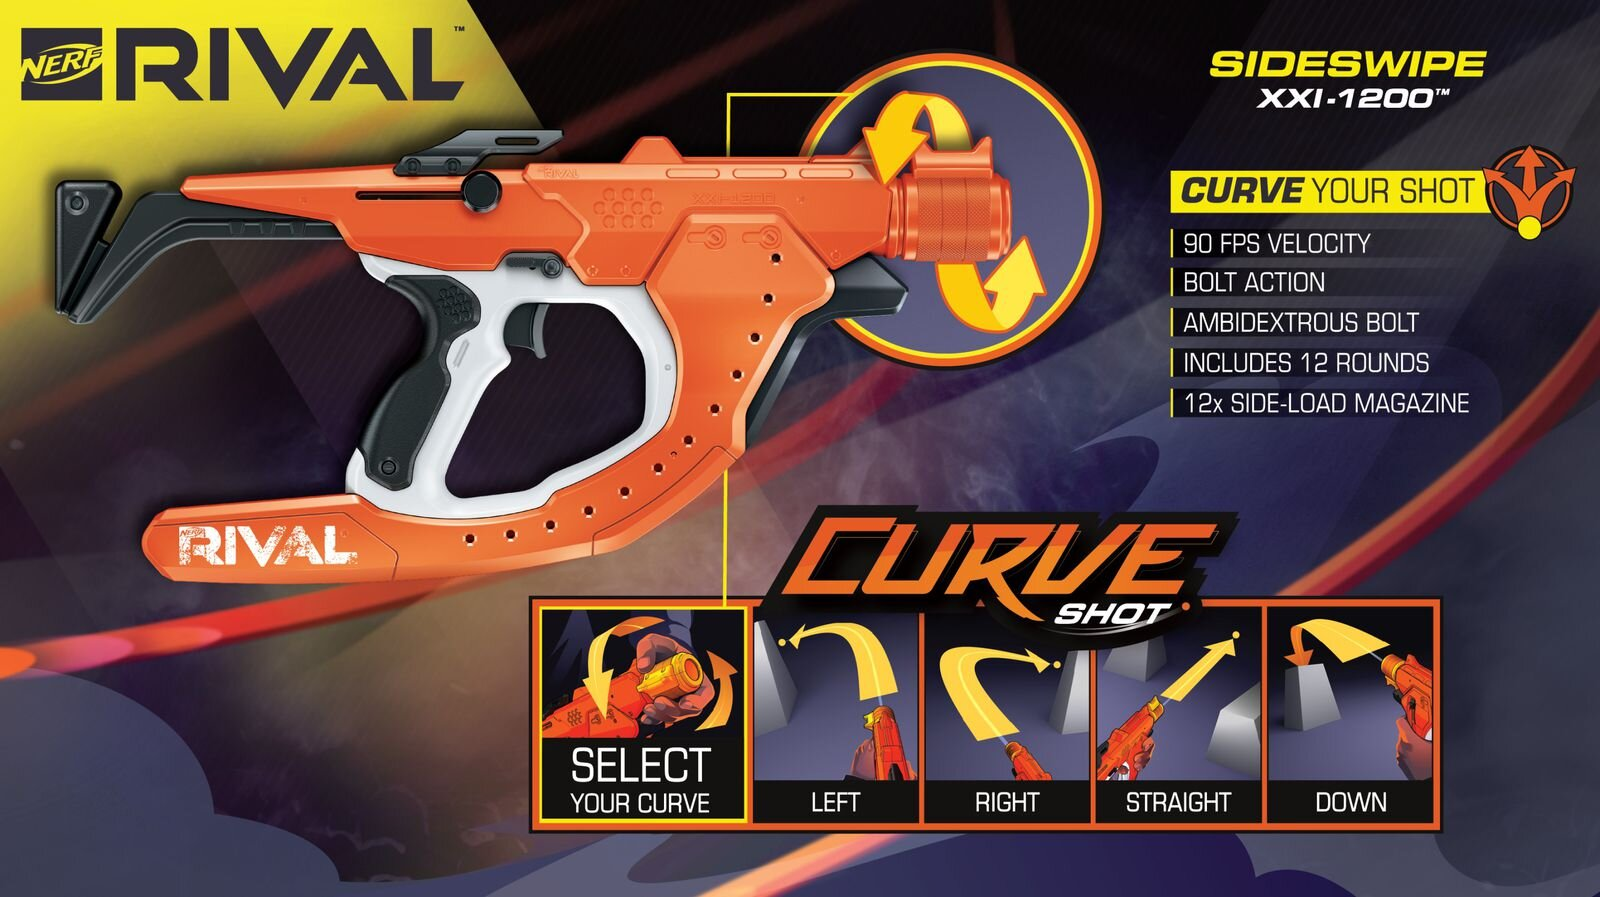 Nerf Now Has Rival Guns That Blast Out Curved Shots!2